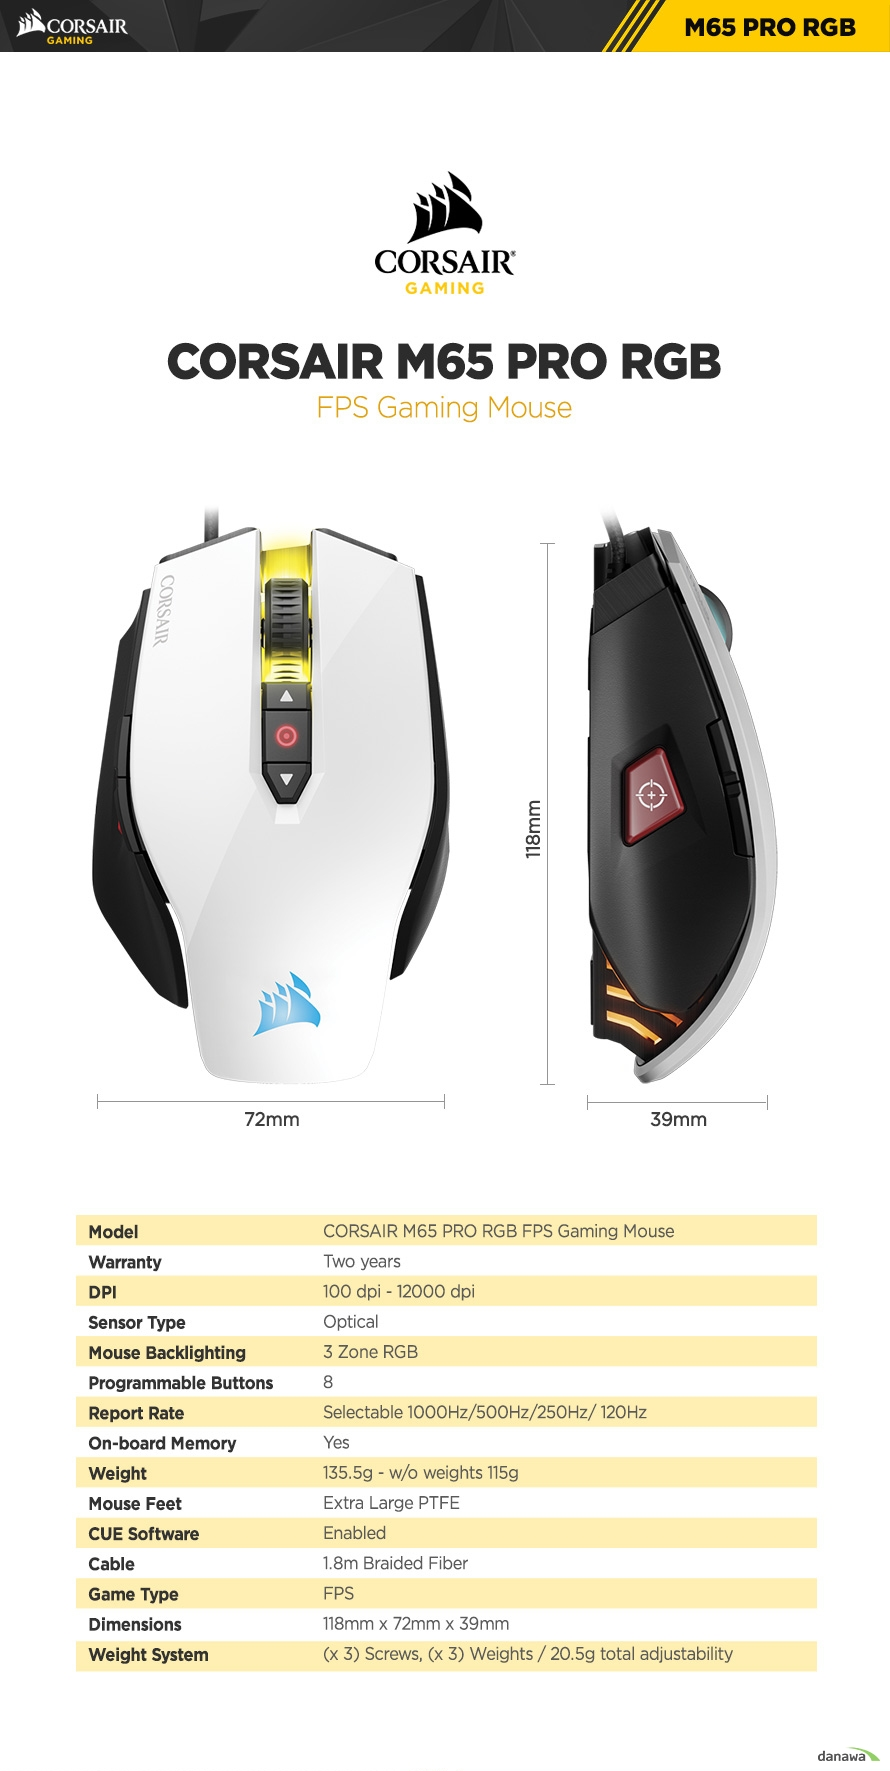 ModelCORSAIR M65 PRO RGB FPS Gaming MouseWarrantyTwo yearsDPI100 dpi - 12000 dpiSensor TypeOpticalMouse Backlighting3 Zone RGBProgrammable Buttons8Report RateSelectable 1000Hz/500Hz/250Hz/ 120HzOn-board MemoryYesWeight135.5g - w/o weights 115gMouse FeetExtra Large PTFECUE SoftwareEnabledCable1.8m Braided FiberGame TypeFPSDimensions118mm x 72mm x 39mmWeight System(x 3) Screws, (x 3) Weights / 20.5g total adjustability